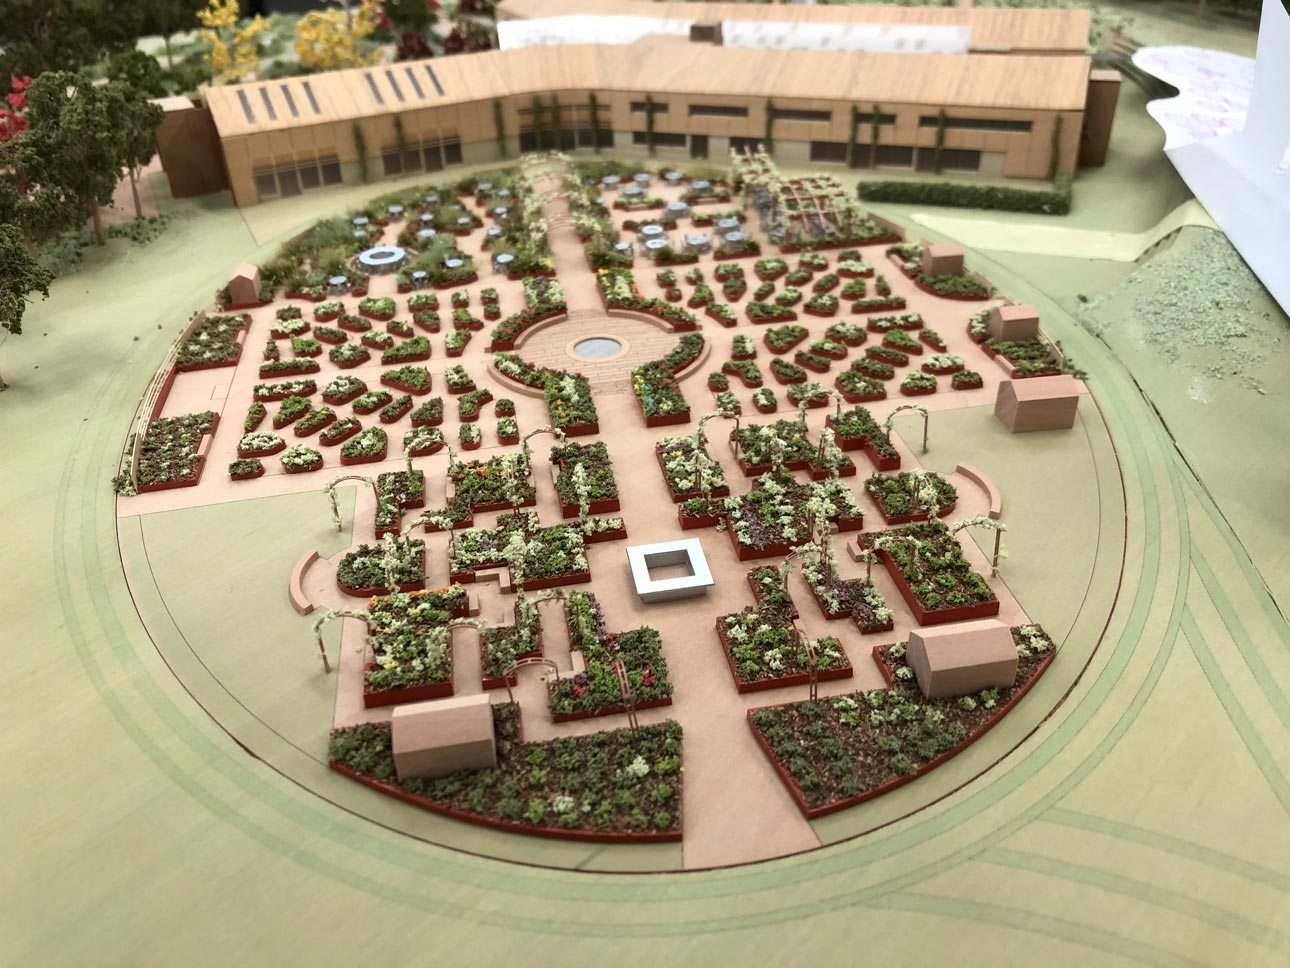 Model view of new world food garden at Royal Horticultural Society, RHS Wisley, Surrey design by Ann-Marie Powell Gardens.